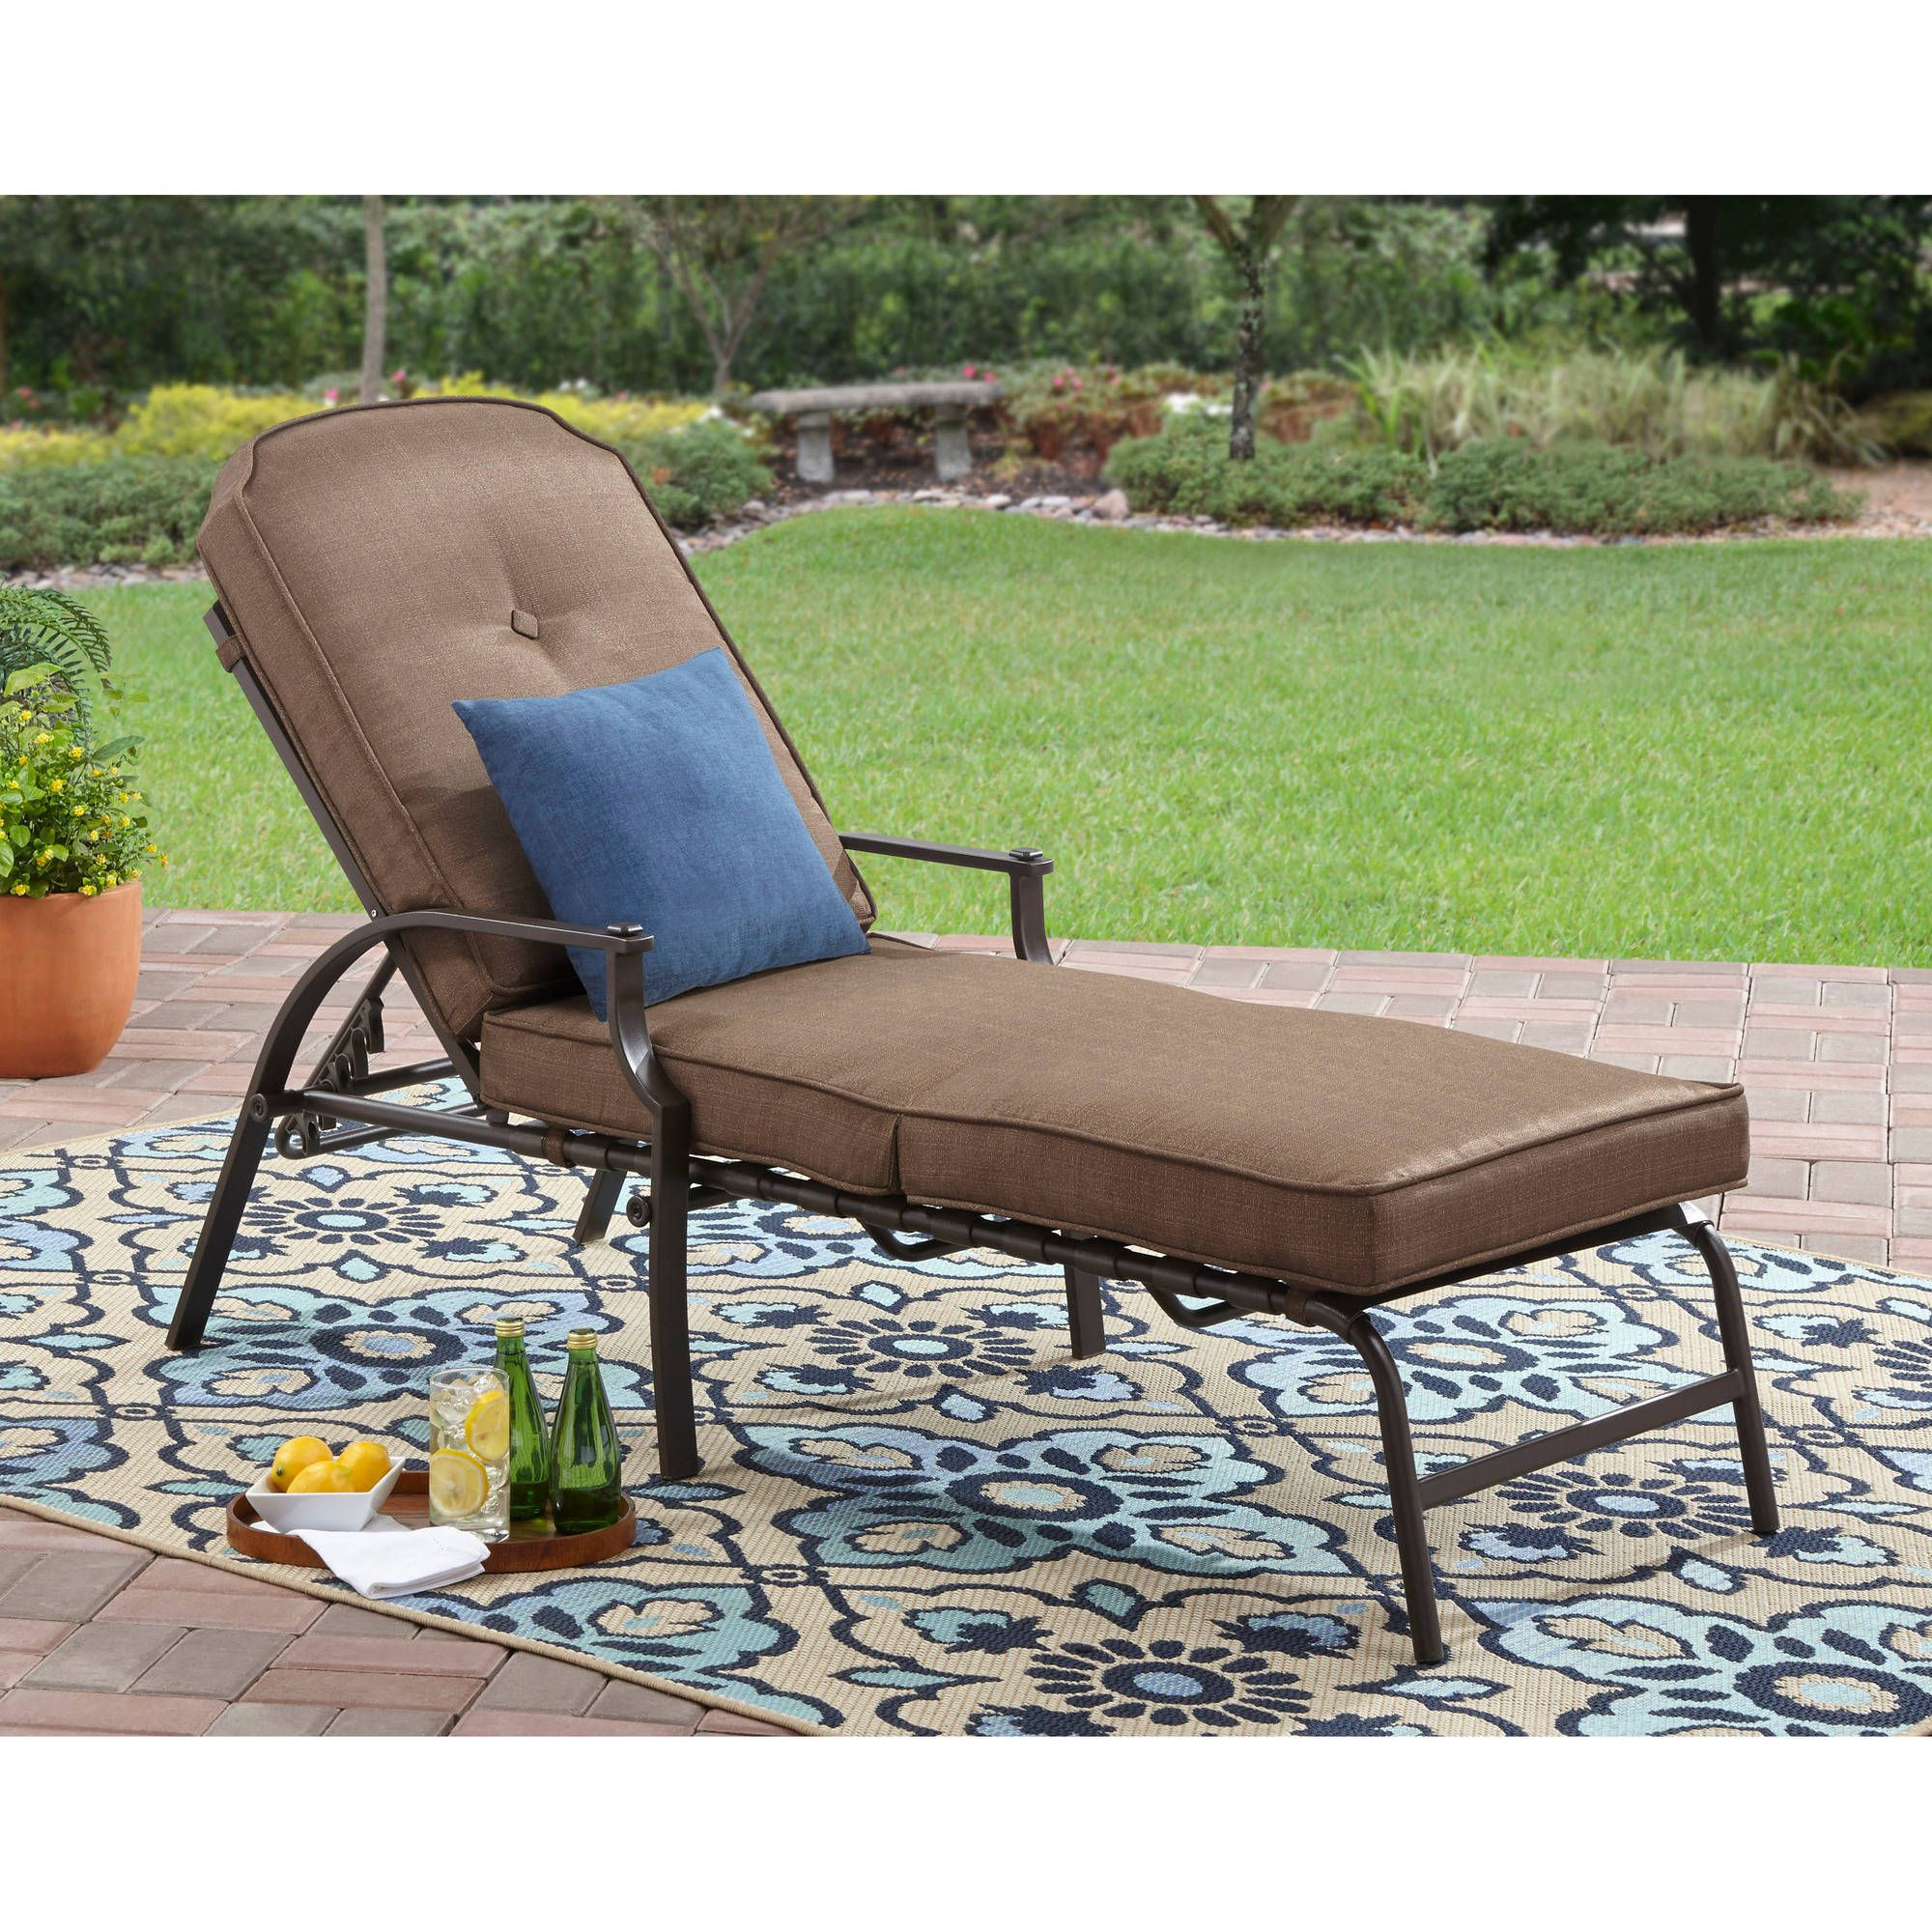 Lounge-sessel Outdoor Fähig Nylon Styropor Outdoor Lounge Sessel Lounge Sessel Outdoor Cl48